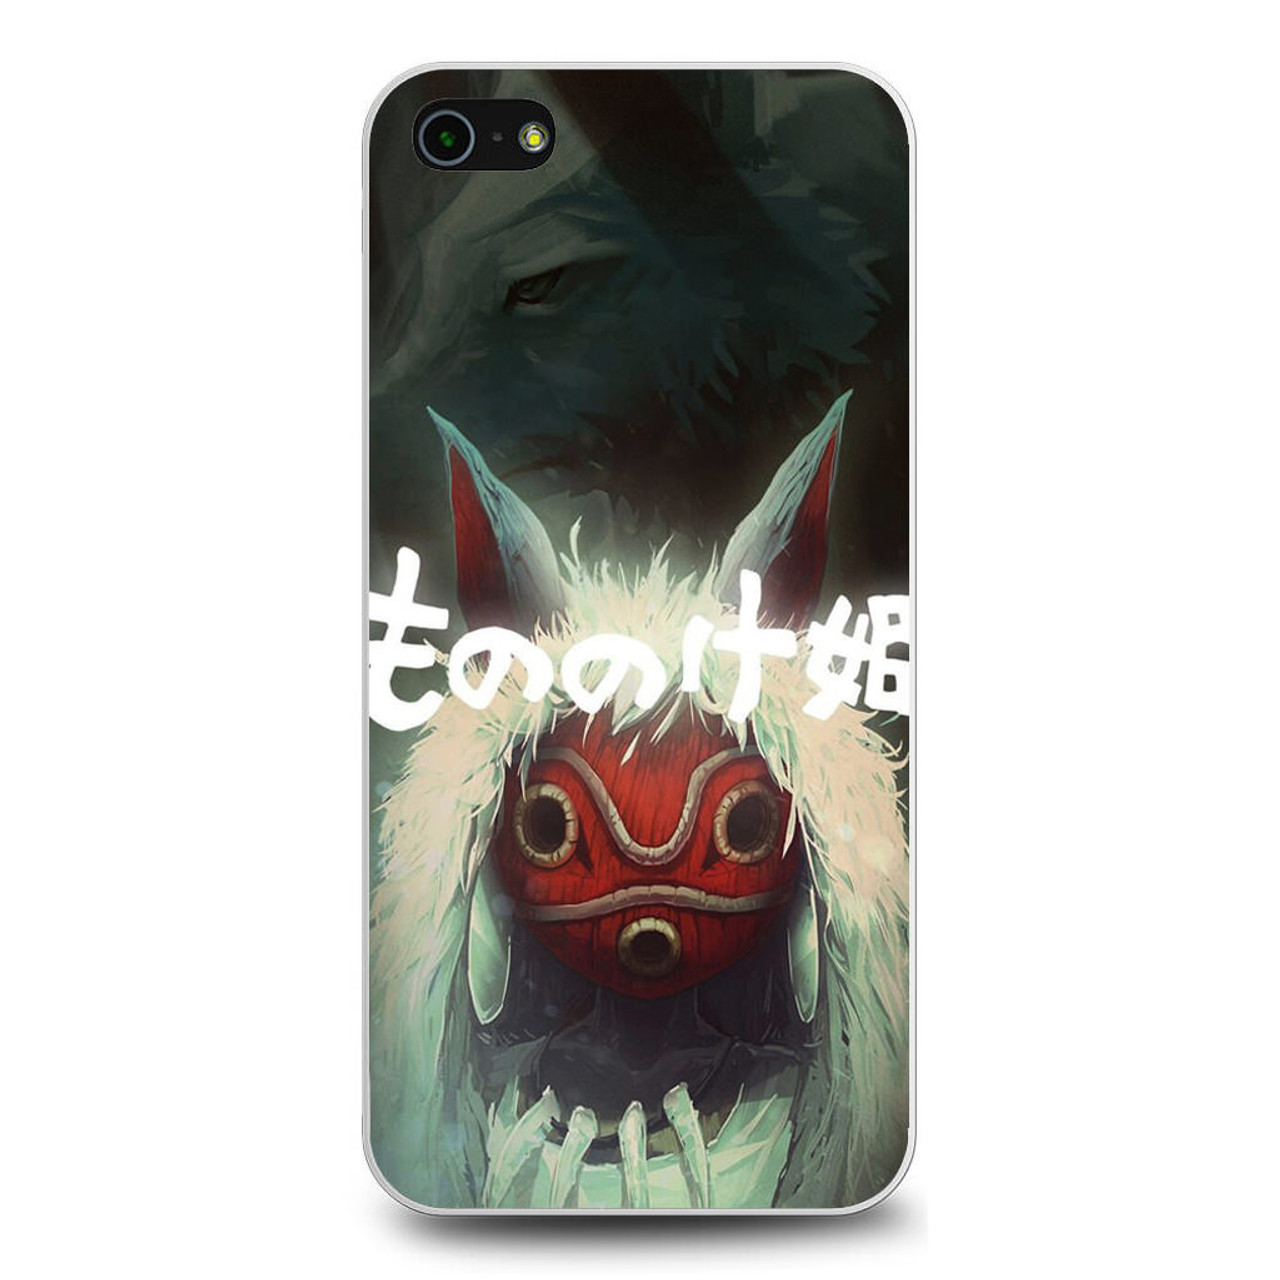 Princess Mononoke Mask White iphone case